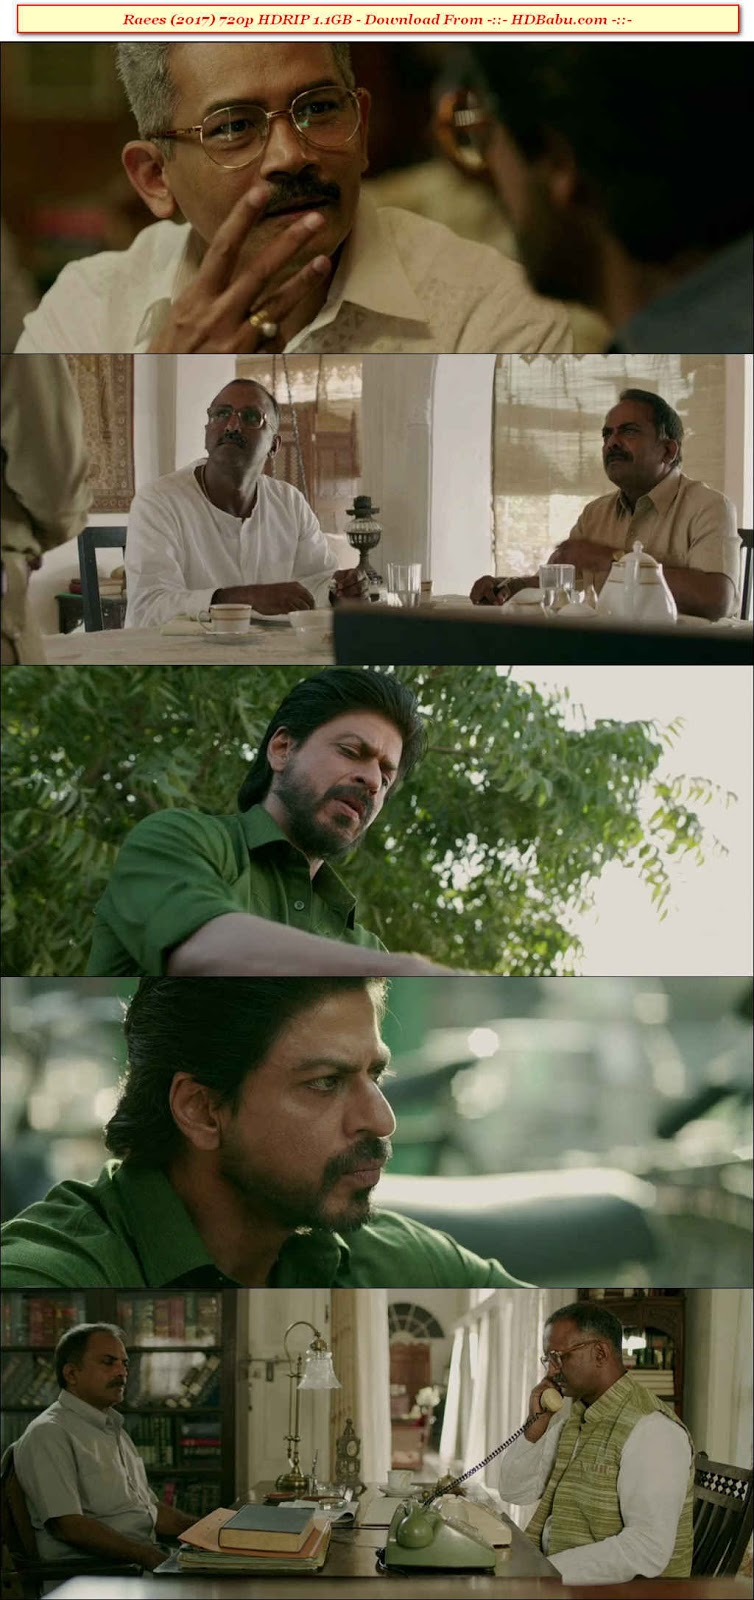 Raees Full Movie Download, Raees Mobile Movie Download HD 2016 – And Also Download Free Raees Full Movie HD. You can also Download Dangal Movie From High-Speed Download Verified Servers, Available Format HD MKV, AVI, MP4.